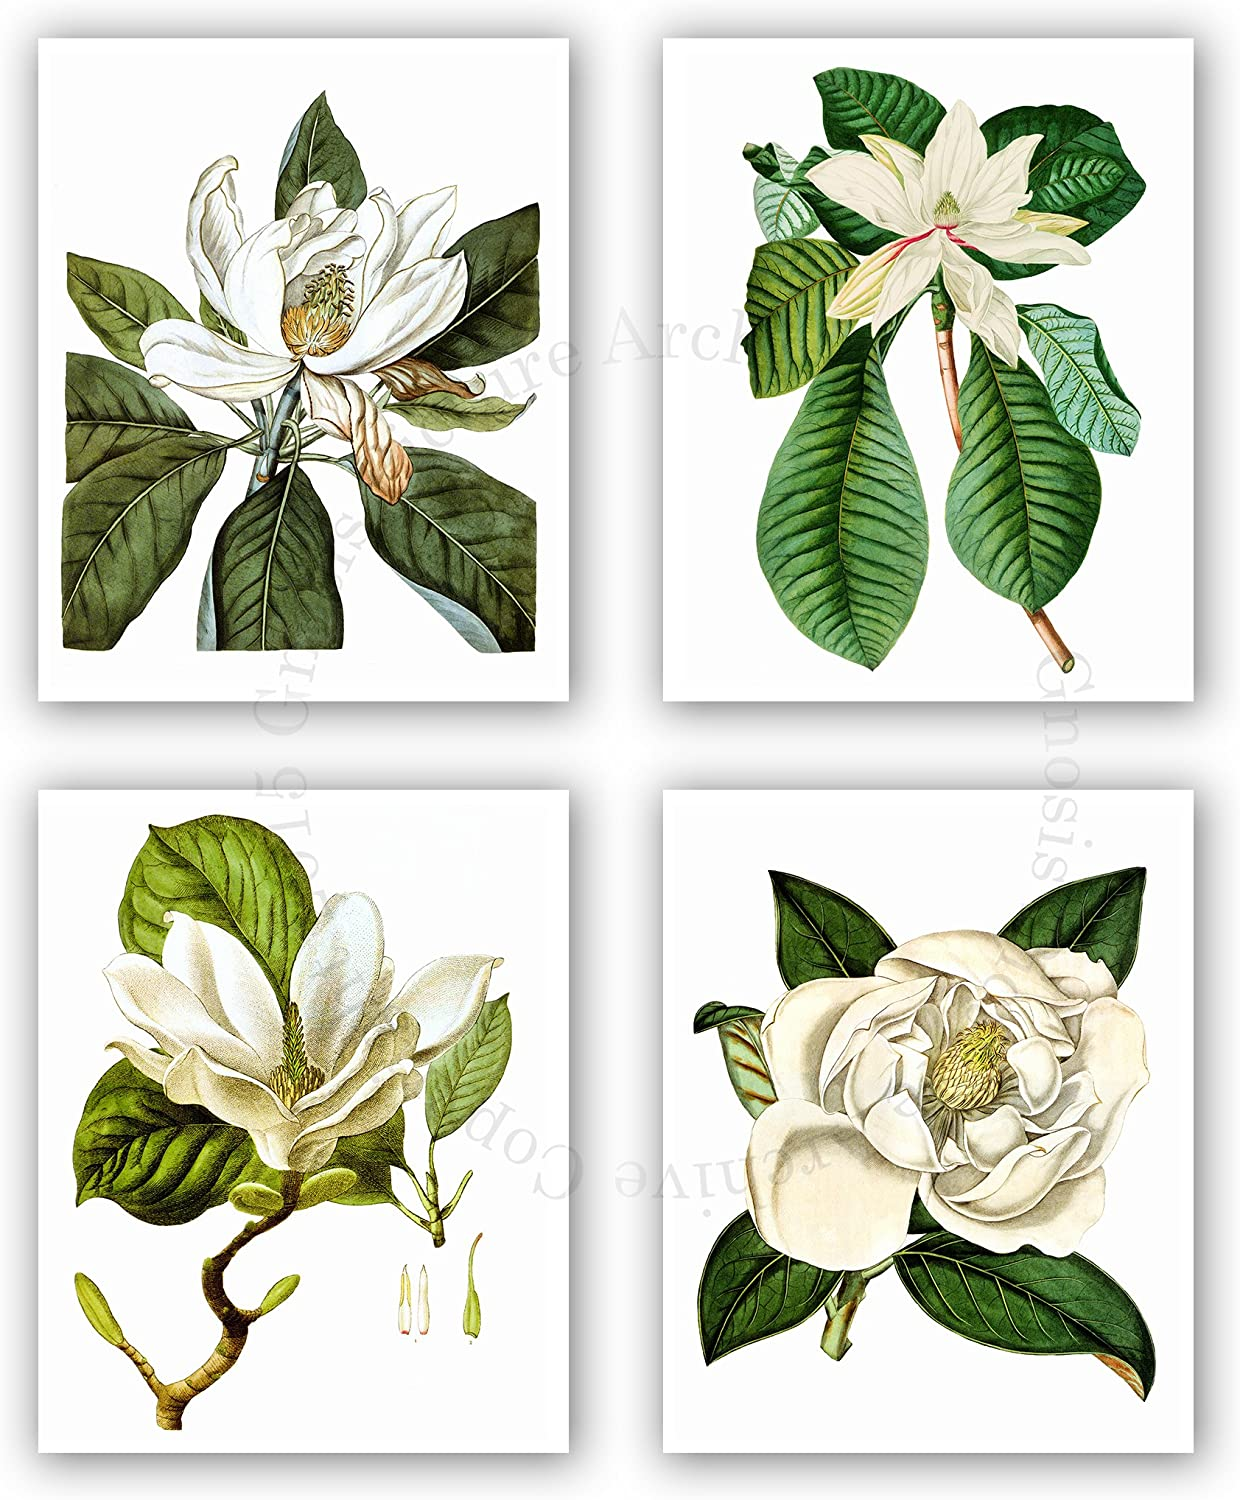 Amazon Com Magnolia Flowers Mothers Day Gift Idea Botanical Wall Art Unframed Set Of 4 Wall Art Prints Home Decor Posters Prints